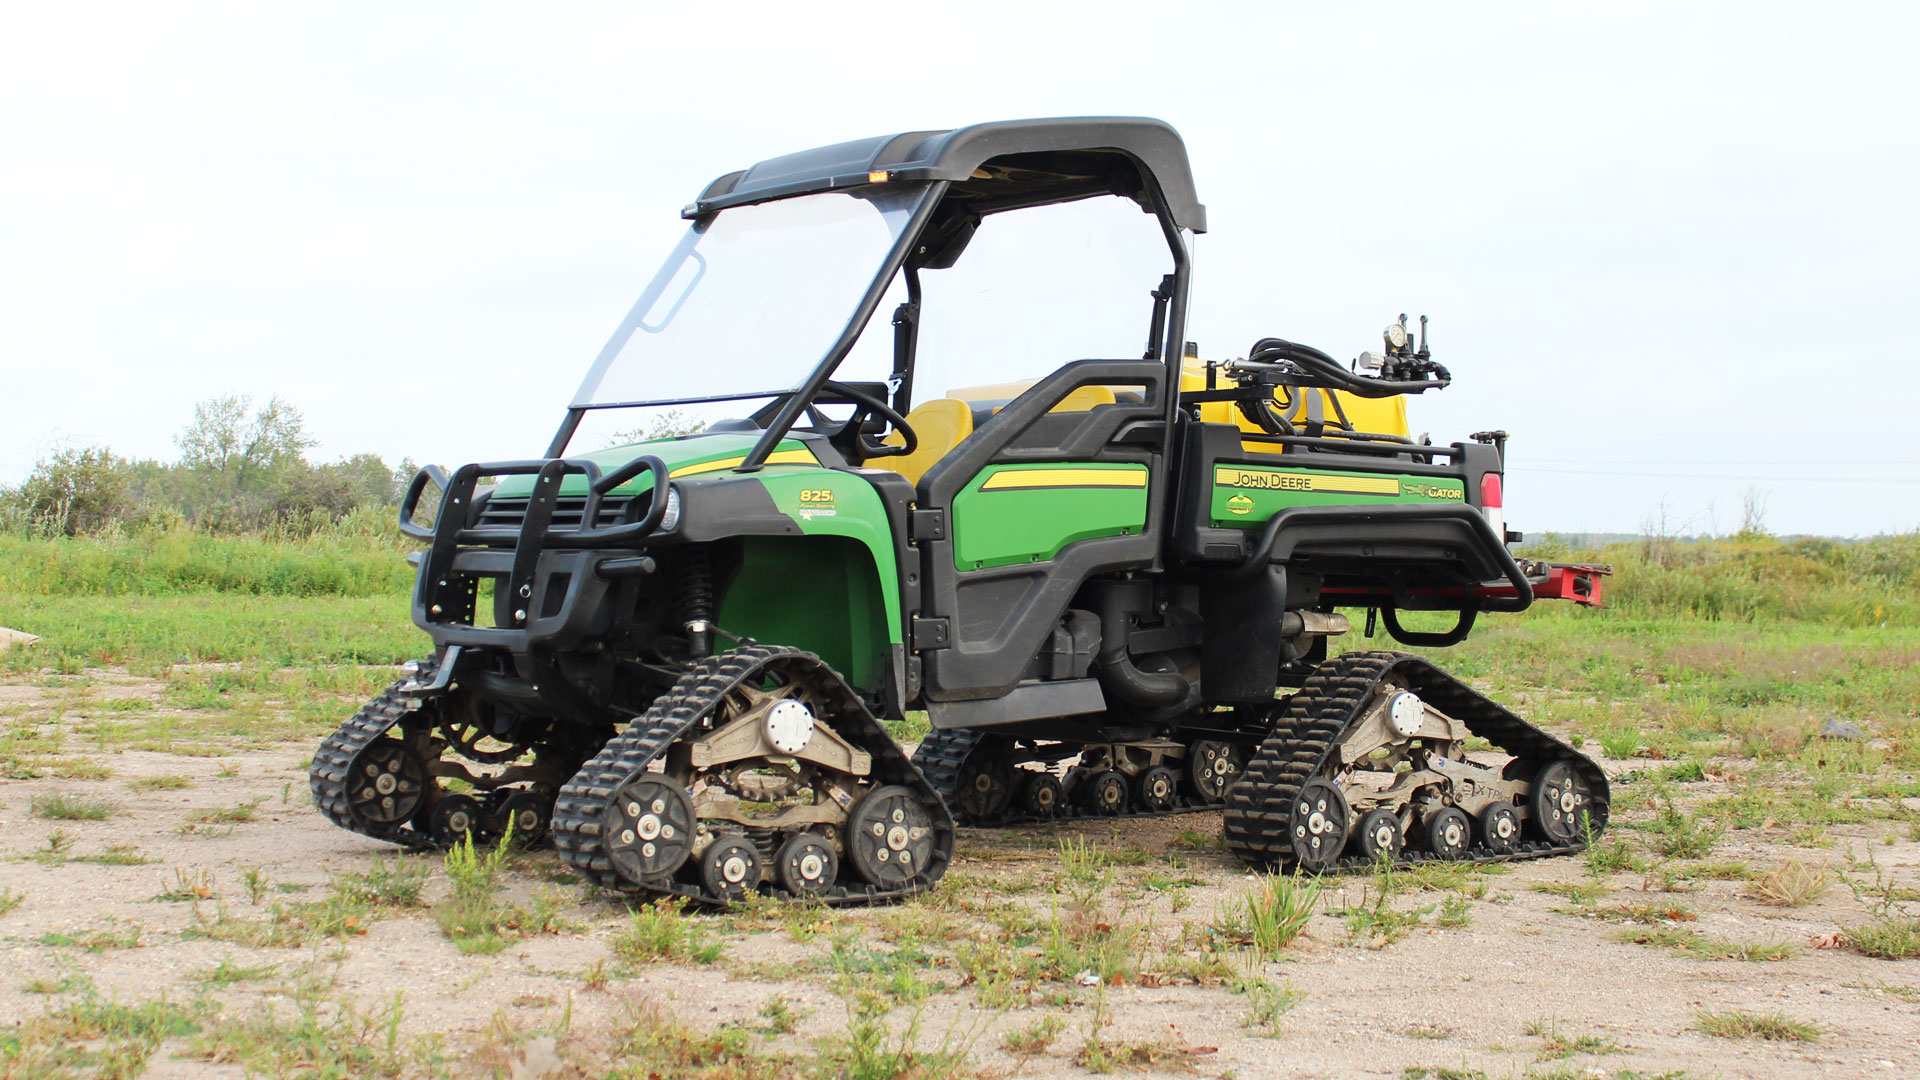 EZ HD Tracks on a John Deere Gator 825i